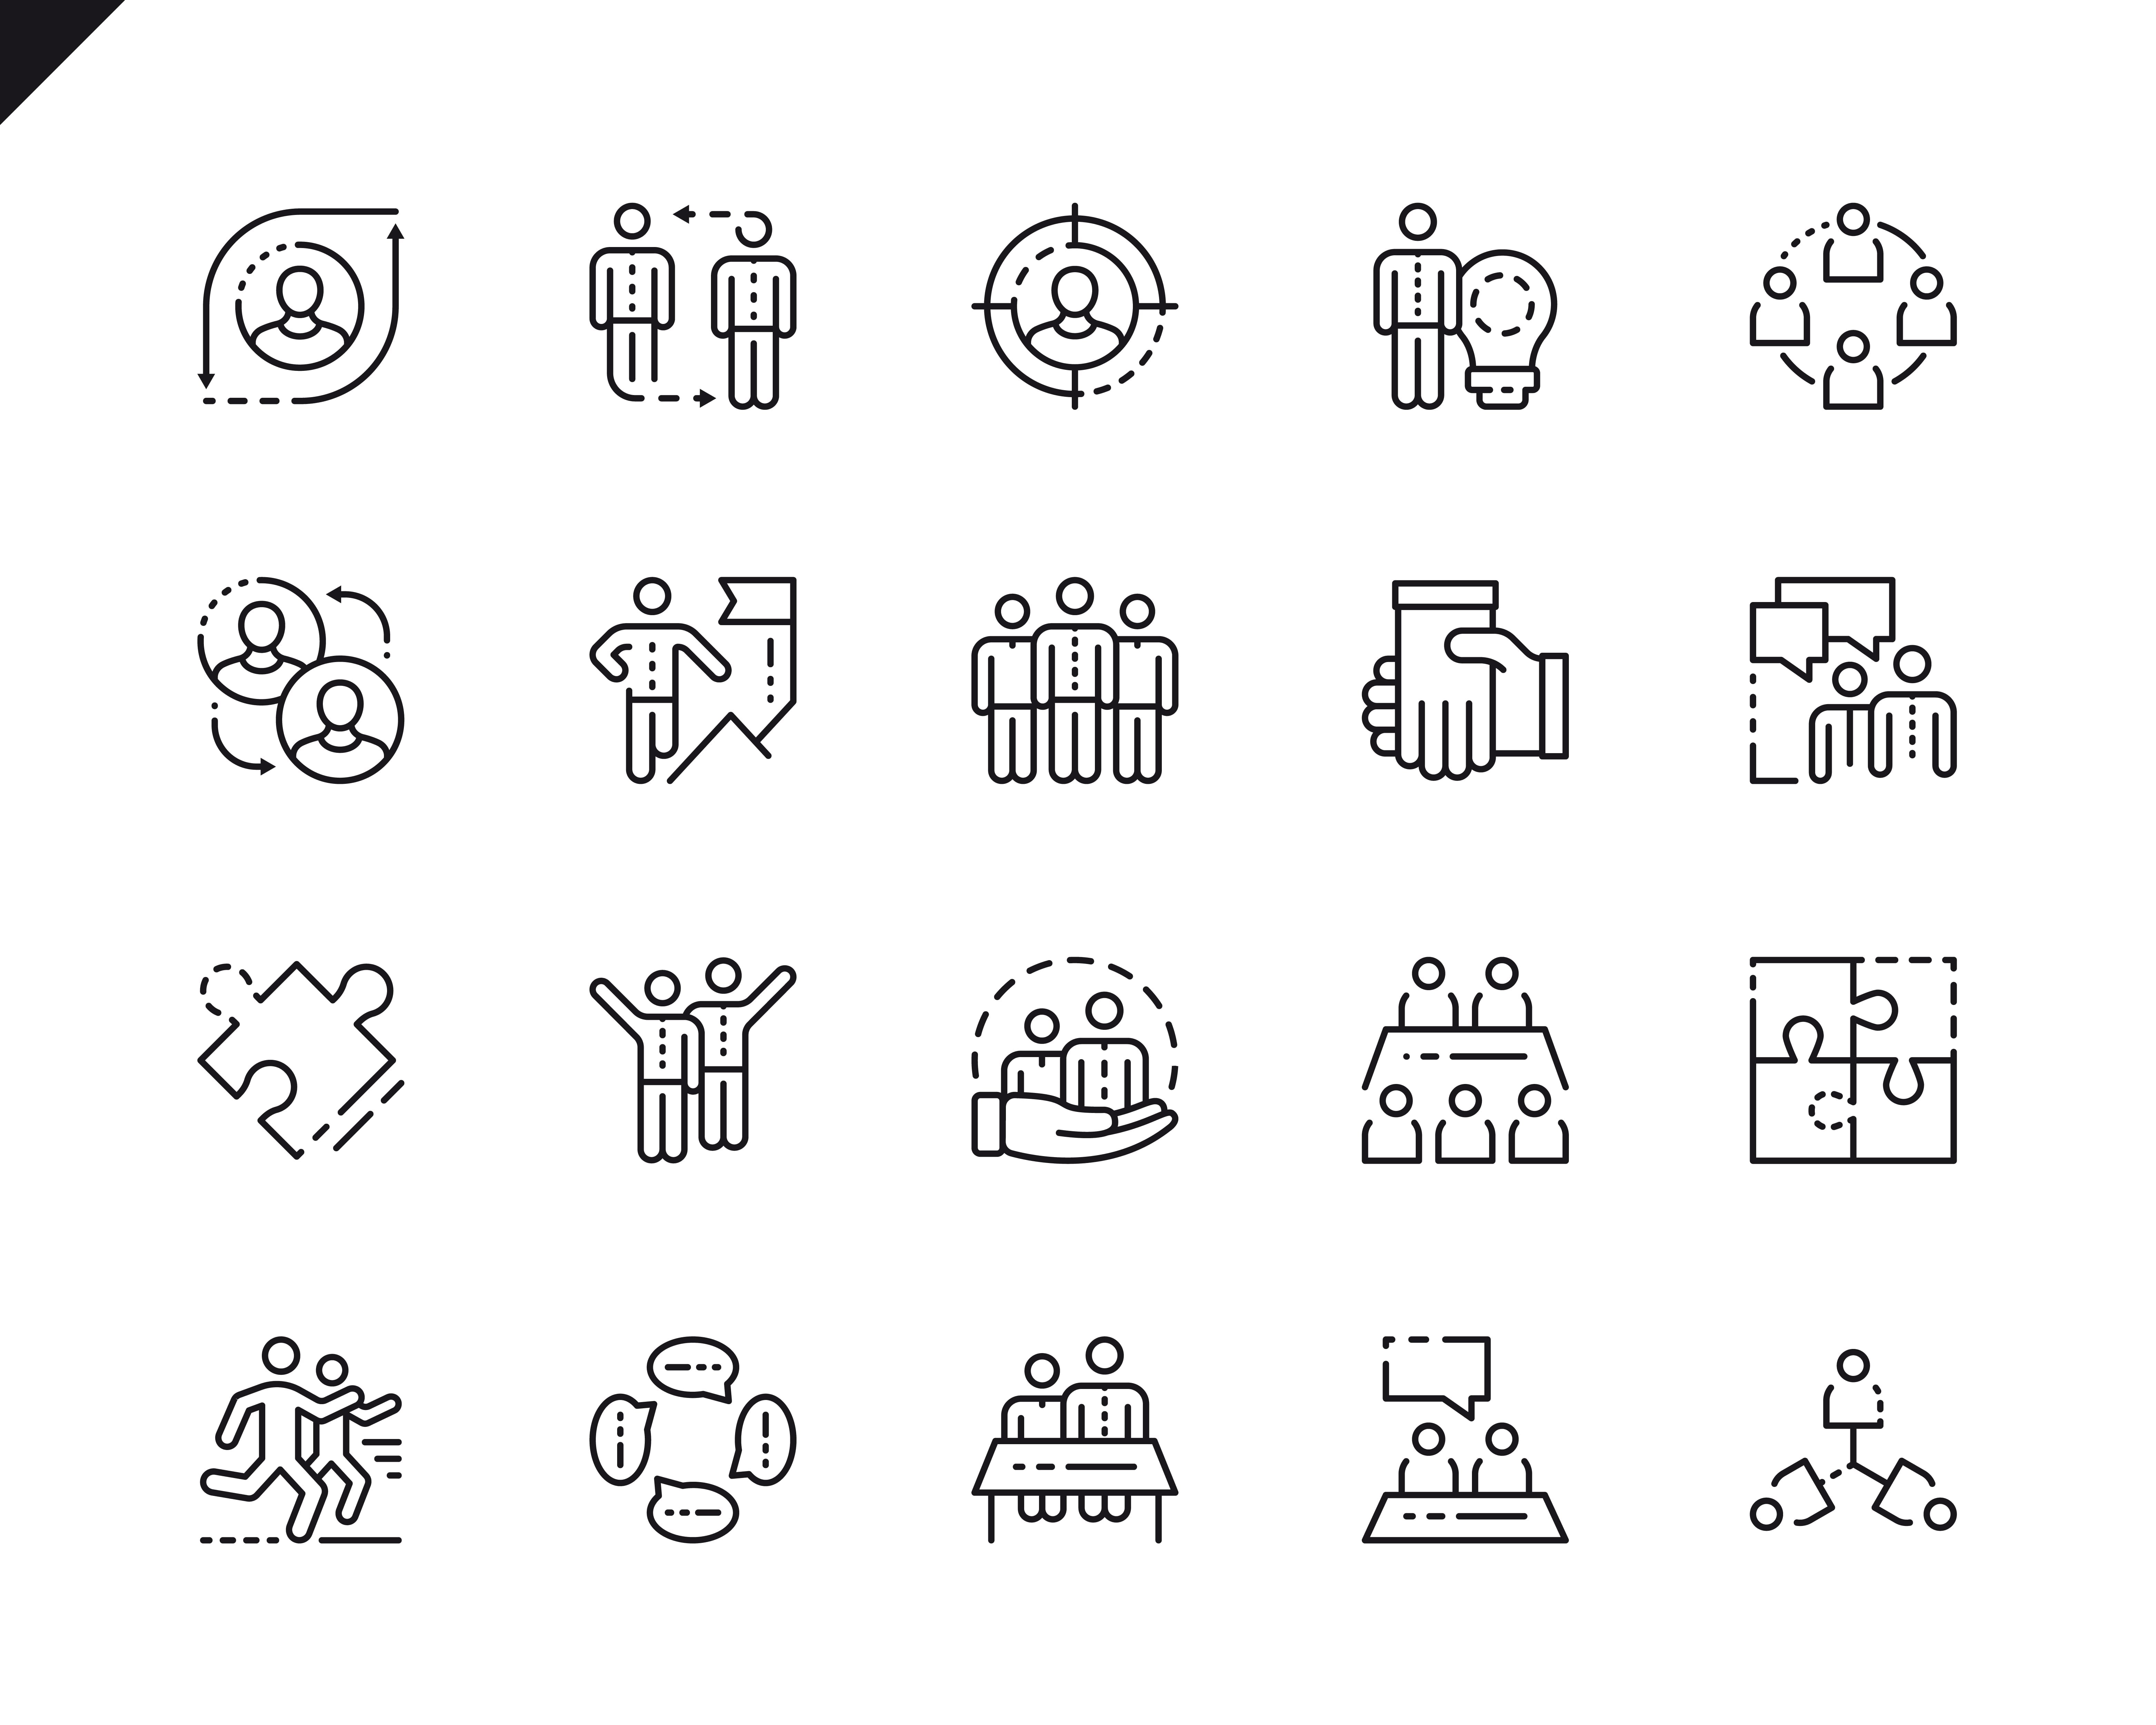 500 Business Line Icons - $22 ONLY - 1 7